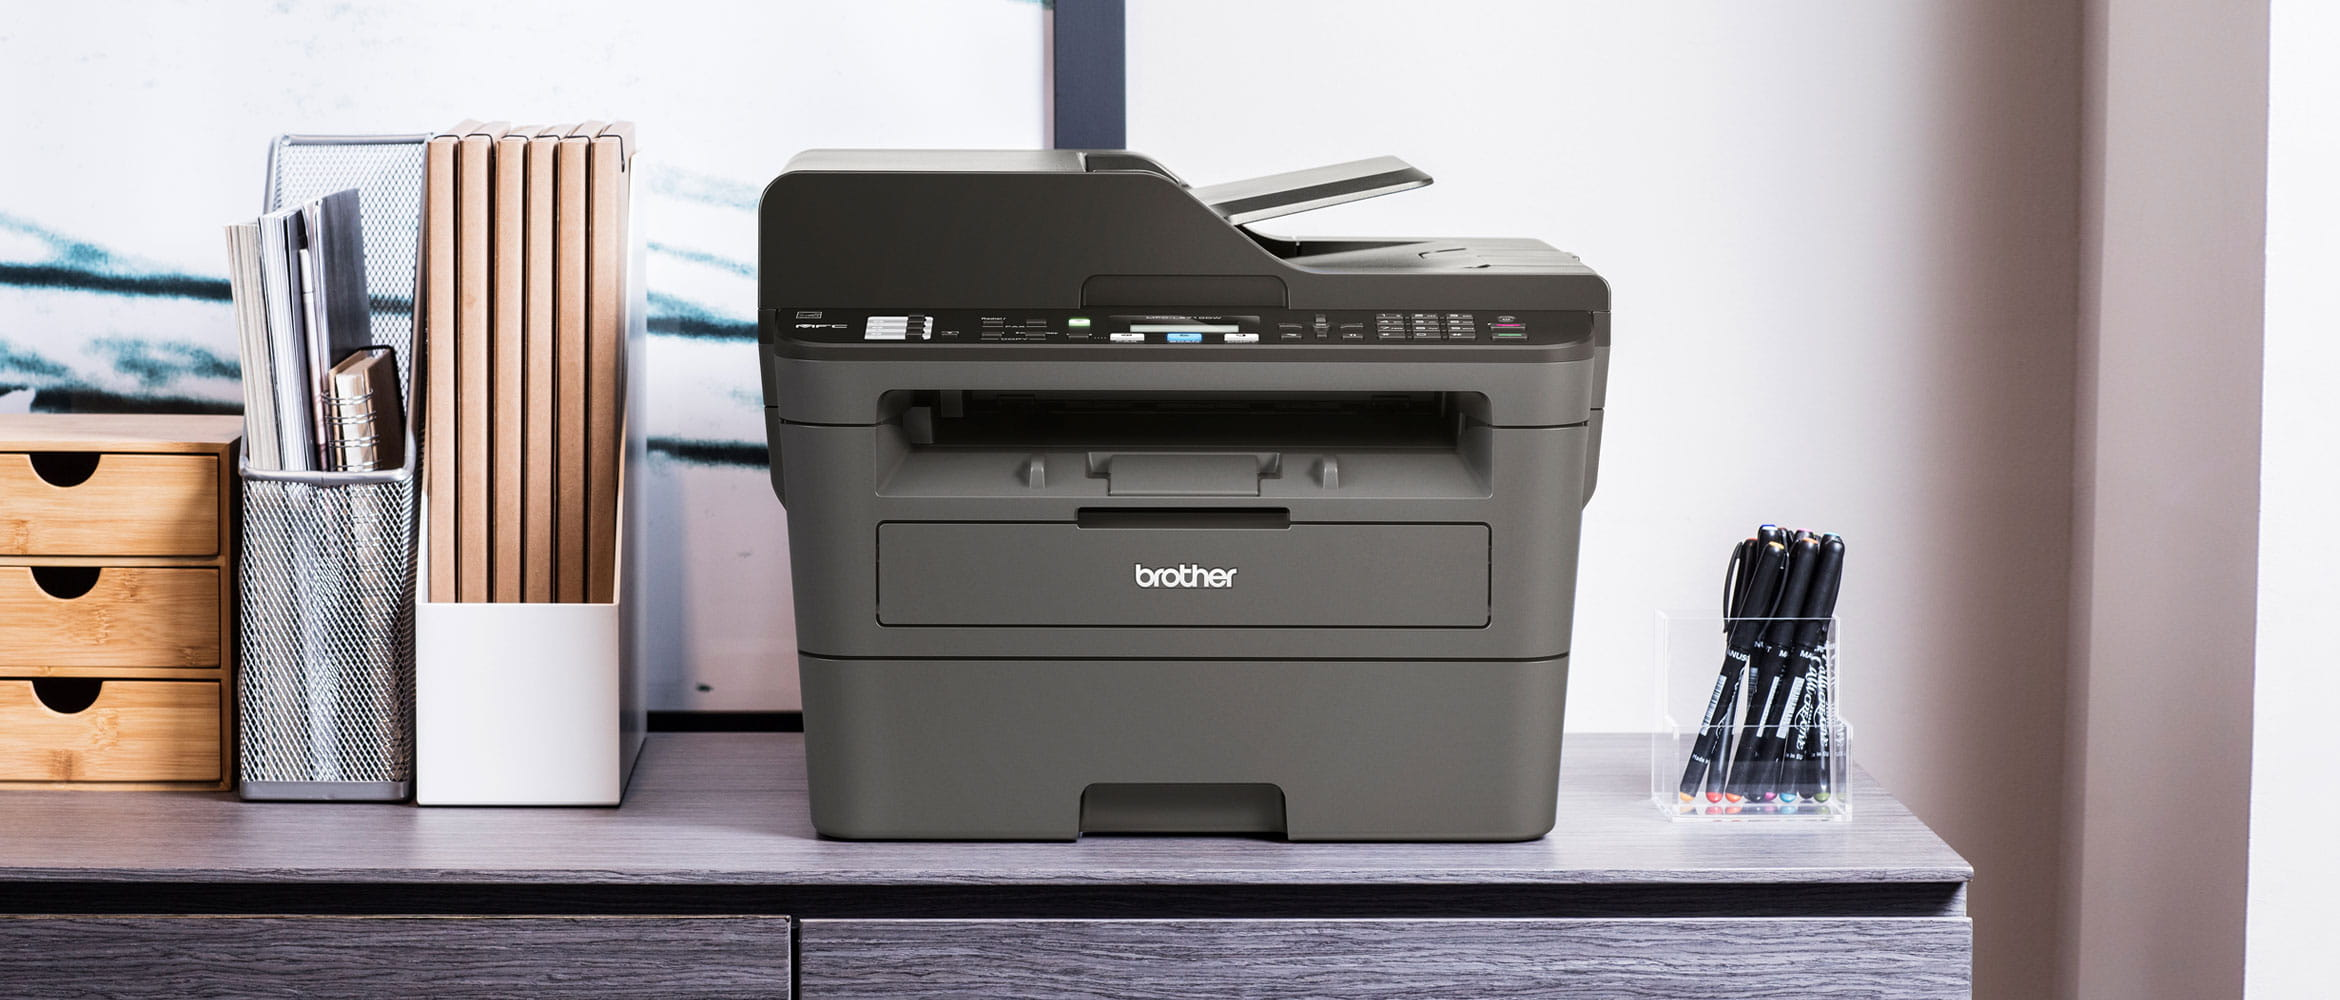 Black Brother printer situated on a desk